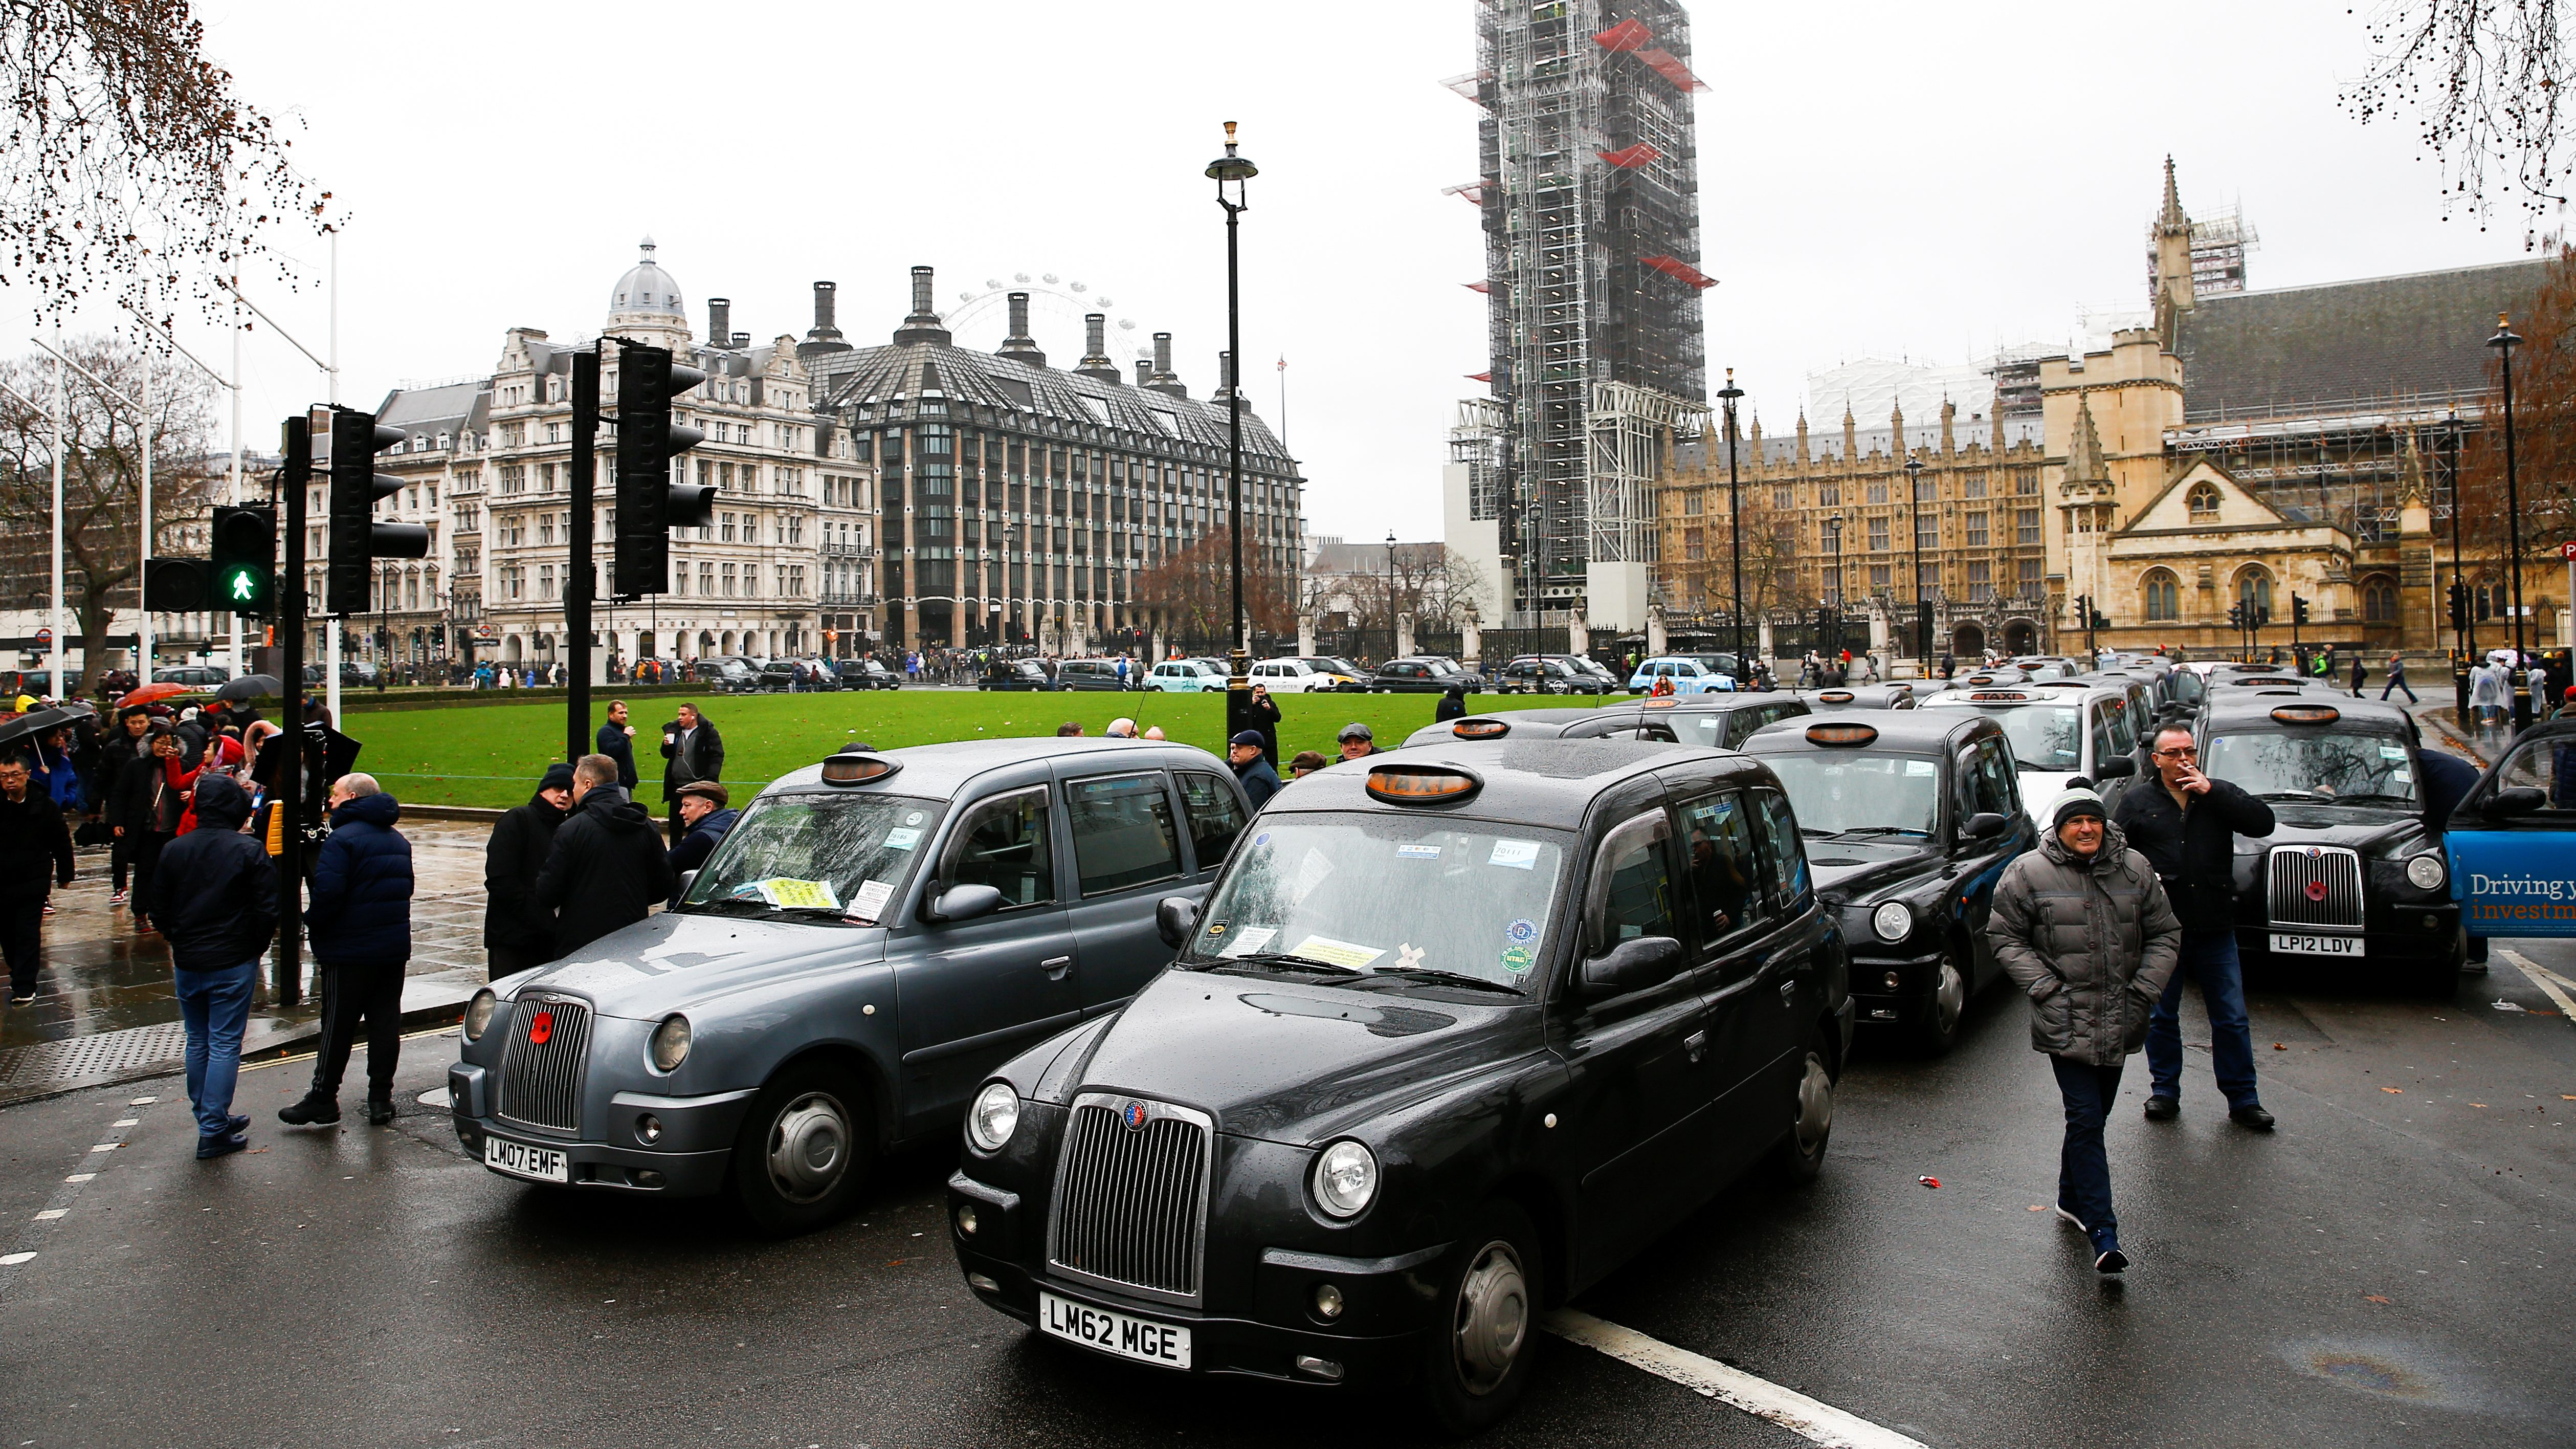 London taxi drivers stage a road block protest outside the Houses of Parliament, in central London